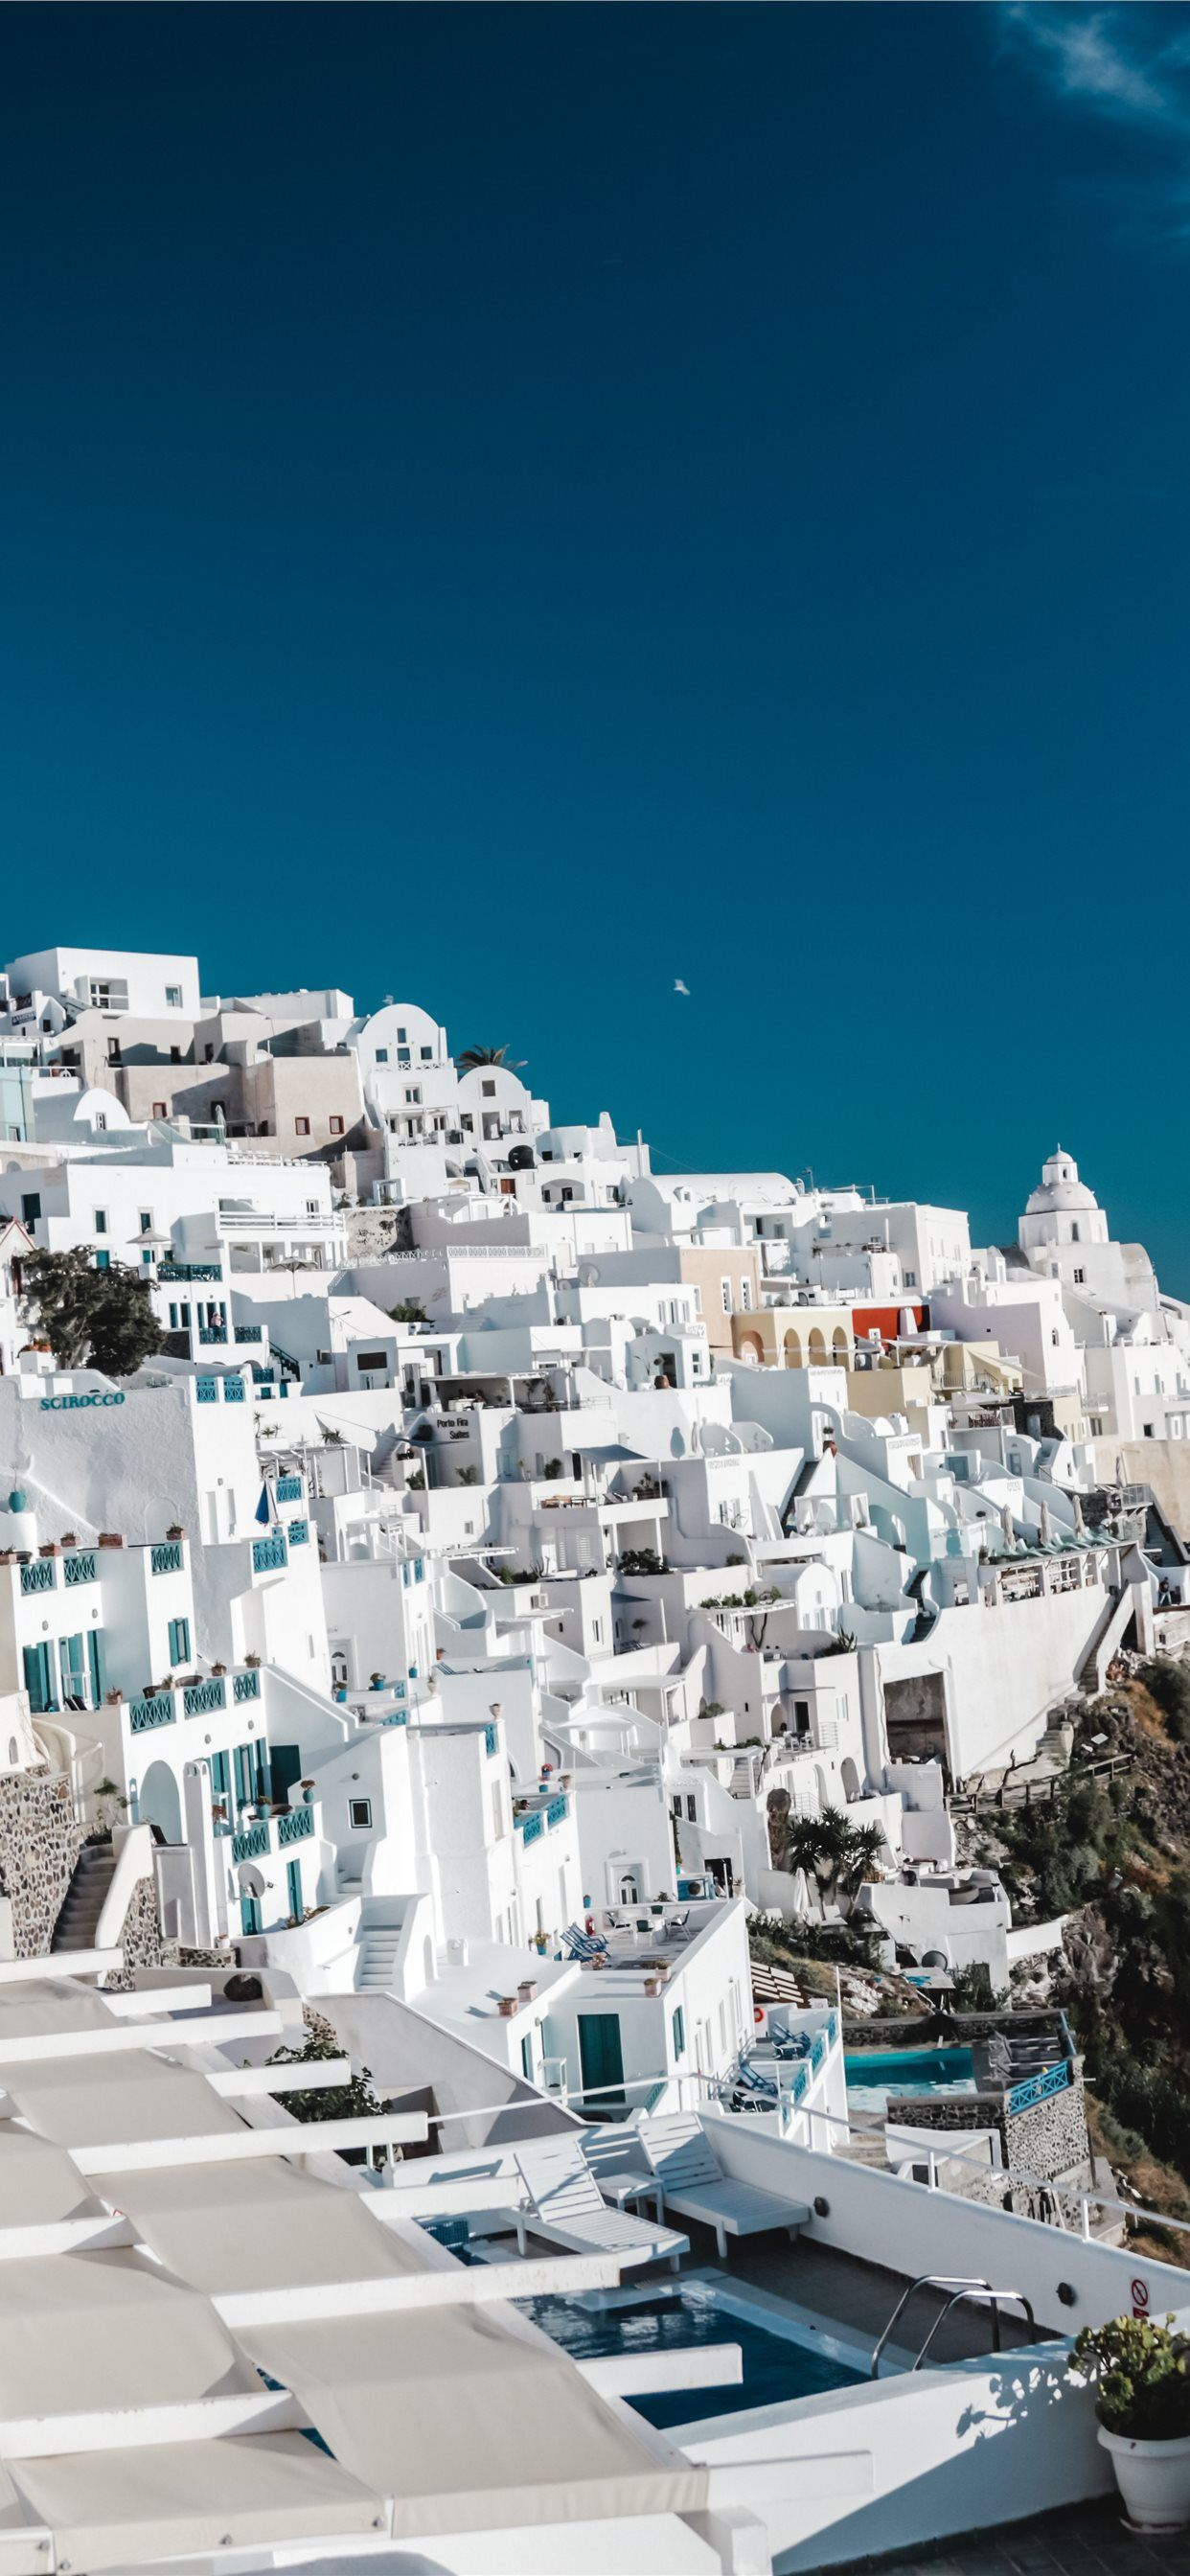 Santorini Greece View Travel Blog Iphone Wallpapers Free Download